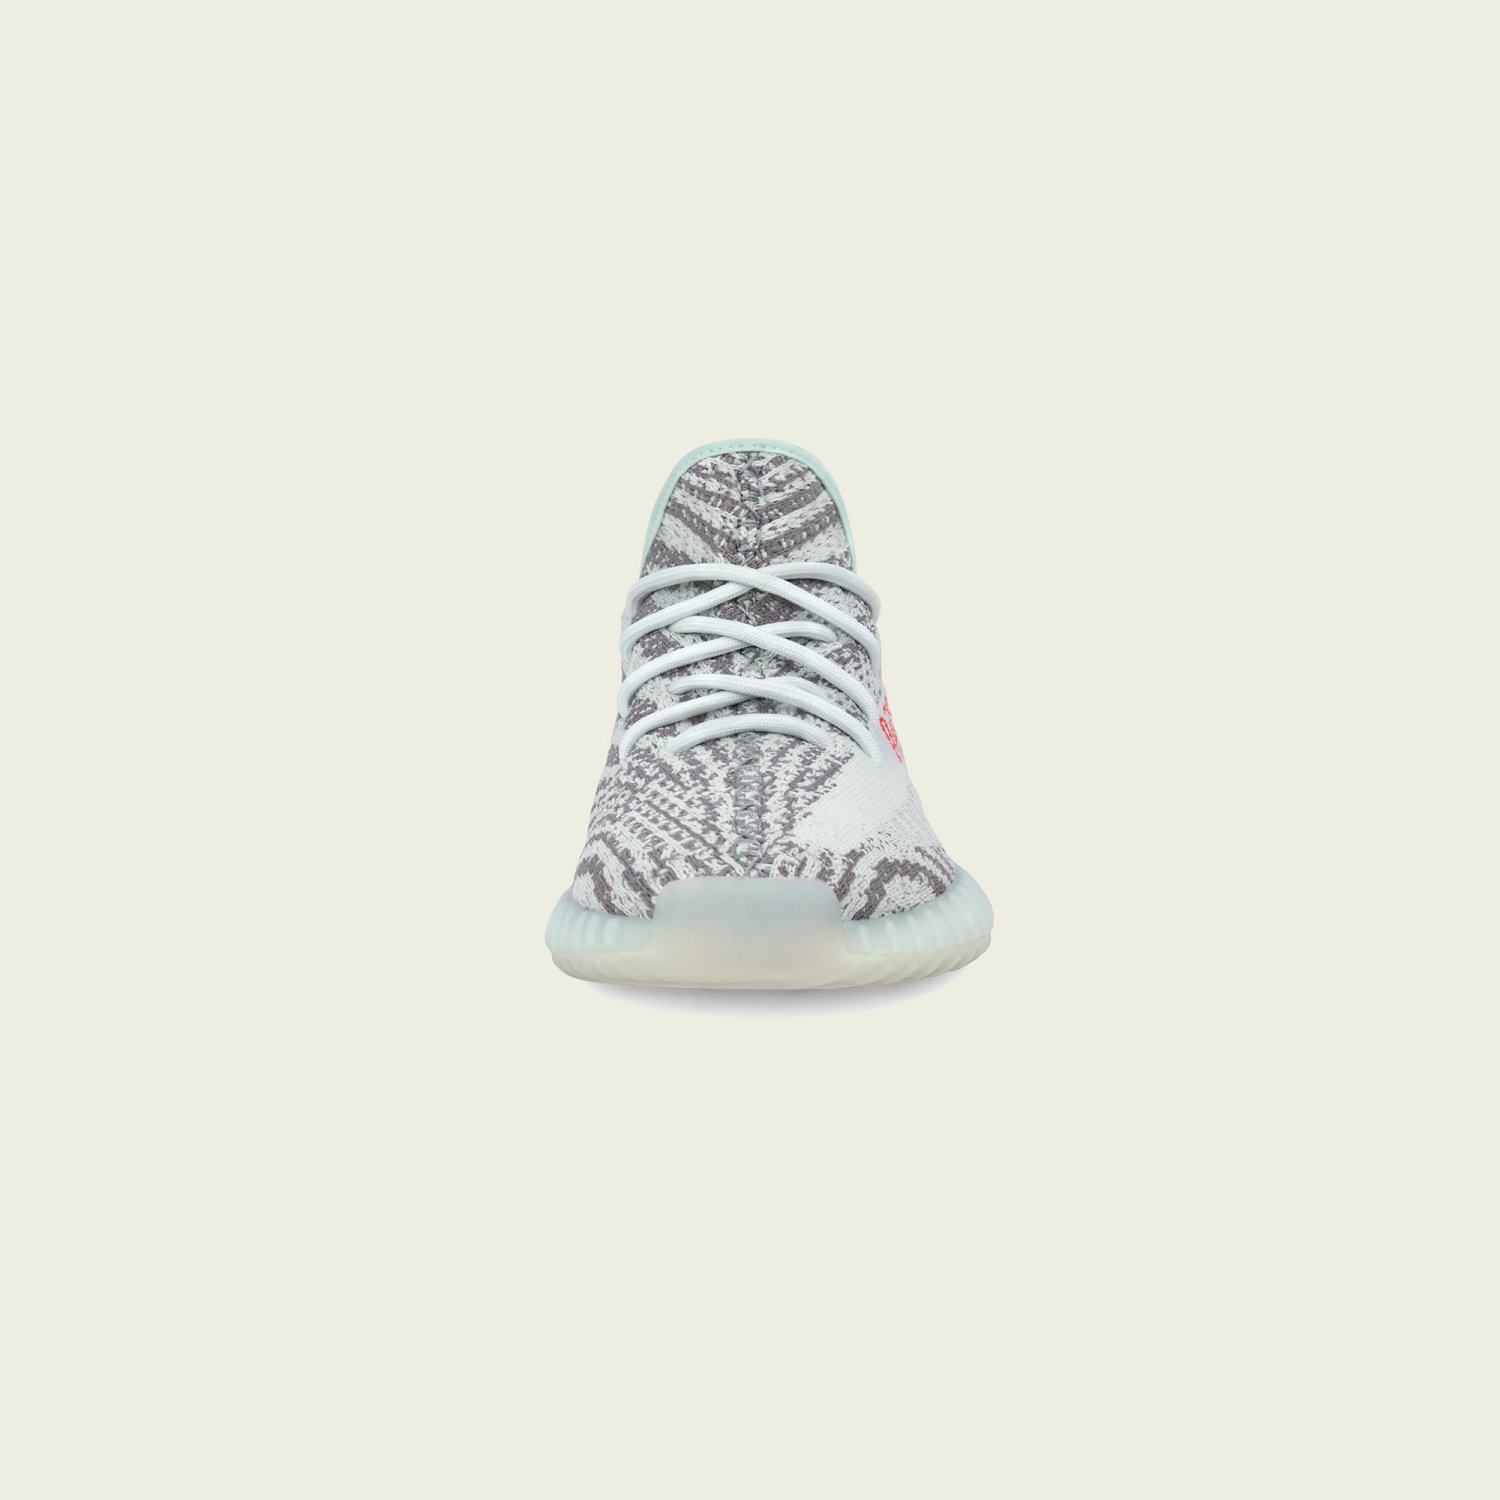 yeezy-boost-350-v2-blue-tint-b37571-release-20171216